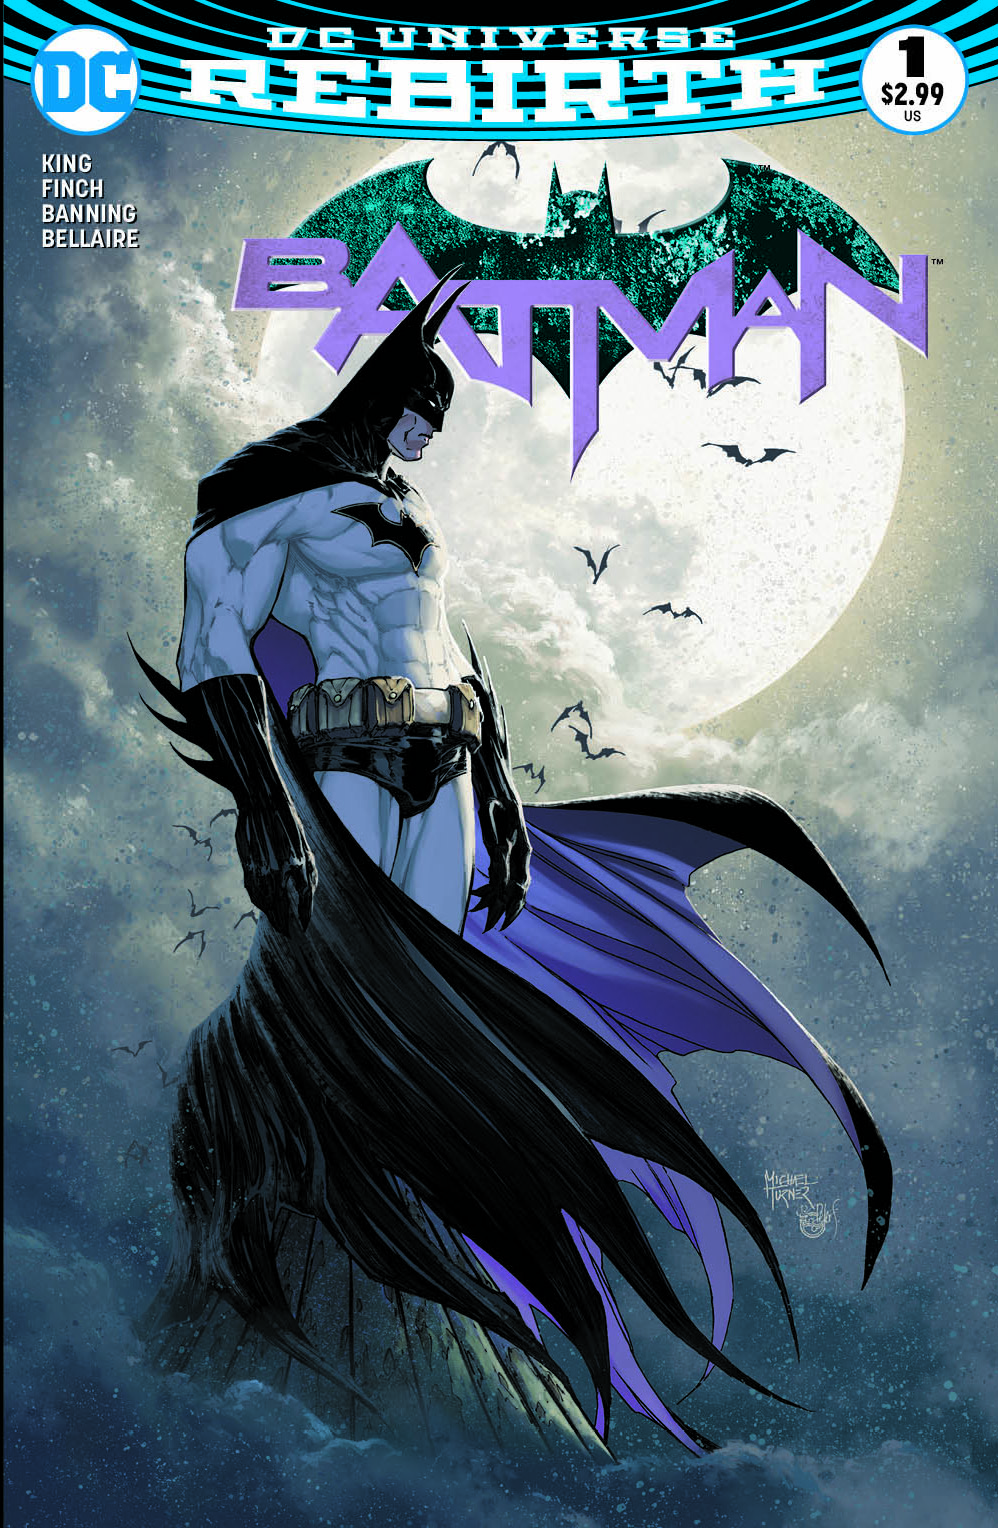 Michael Turner Batman Rebirth cover